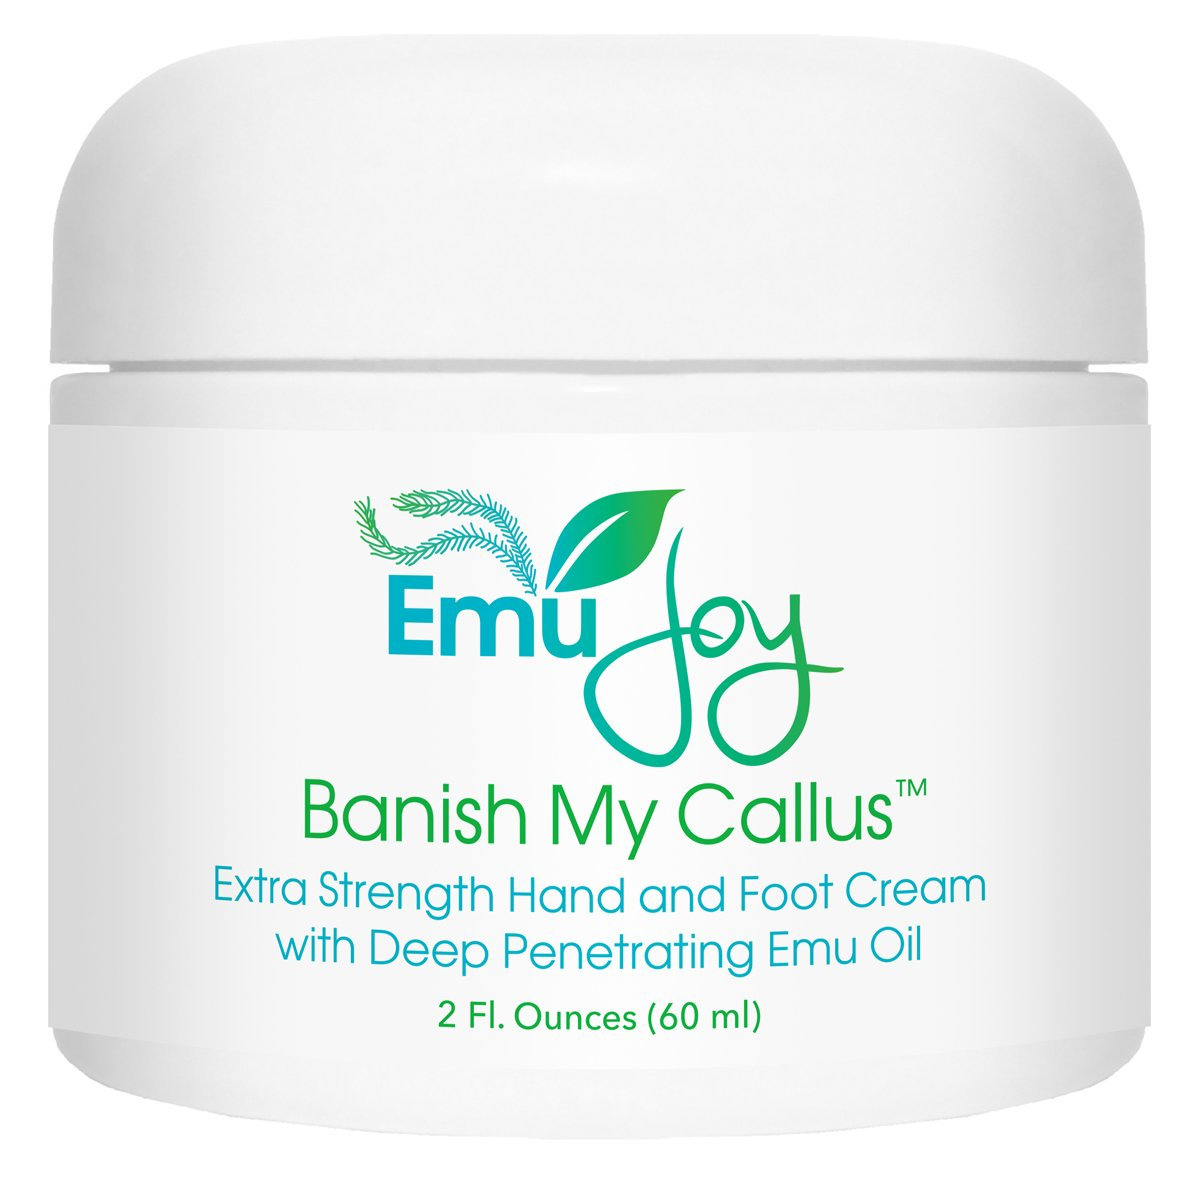 Banish My Callus Foot and Hand Callus Cream - Repairs Split Cracked Heels and Palms, Softens Hard Dry Skin on Knees and Elbows